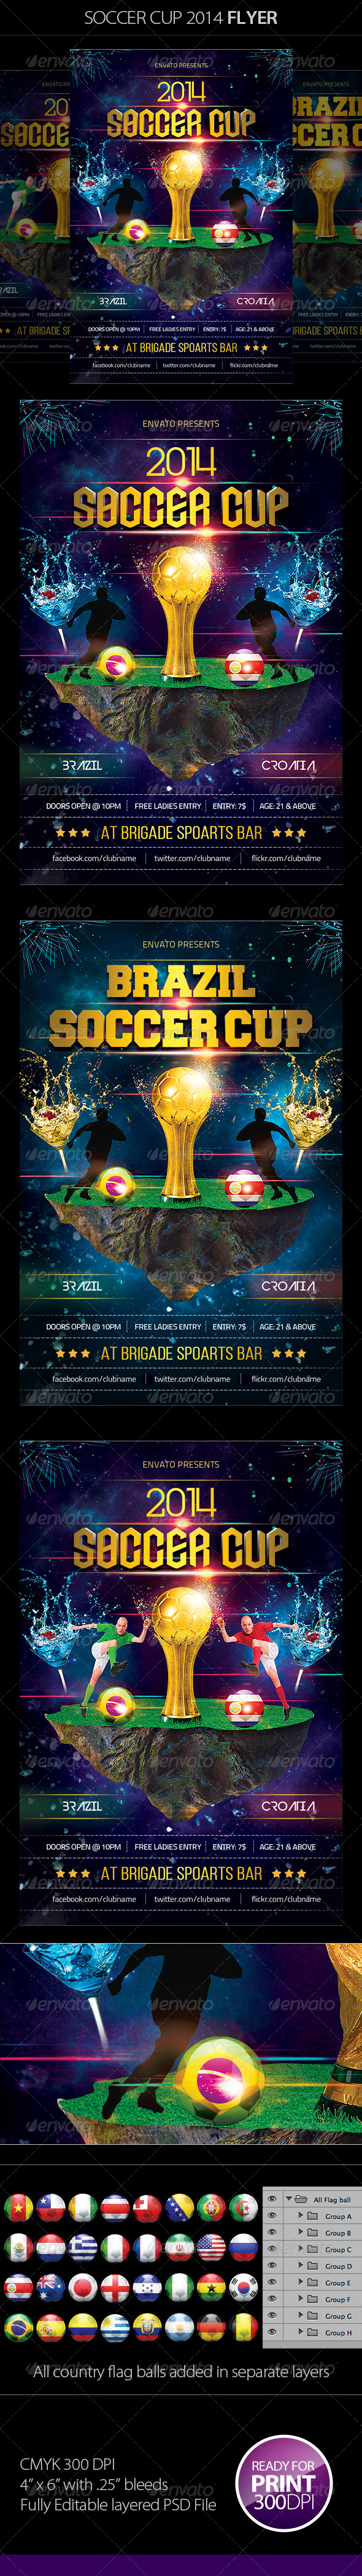 GraphicRiver Soccer Cup 2014 Flyer 7820415